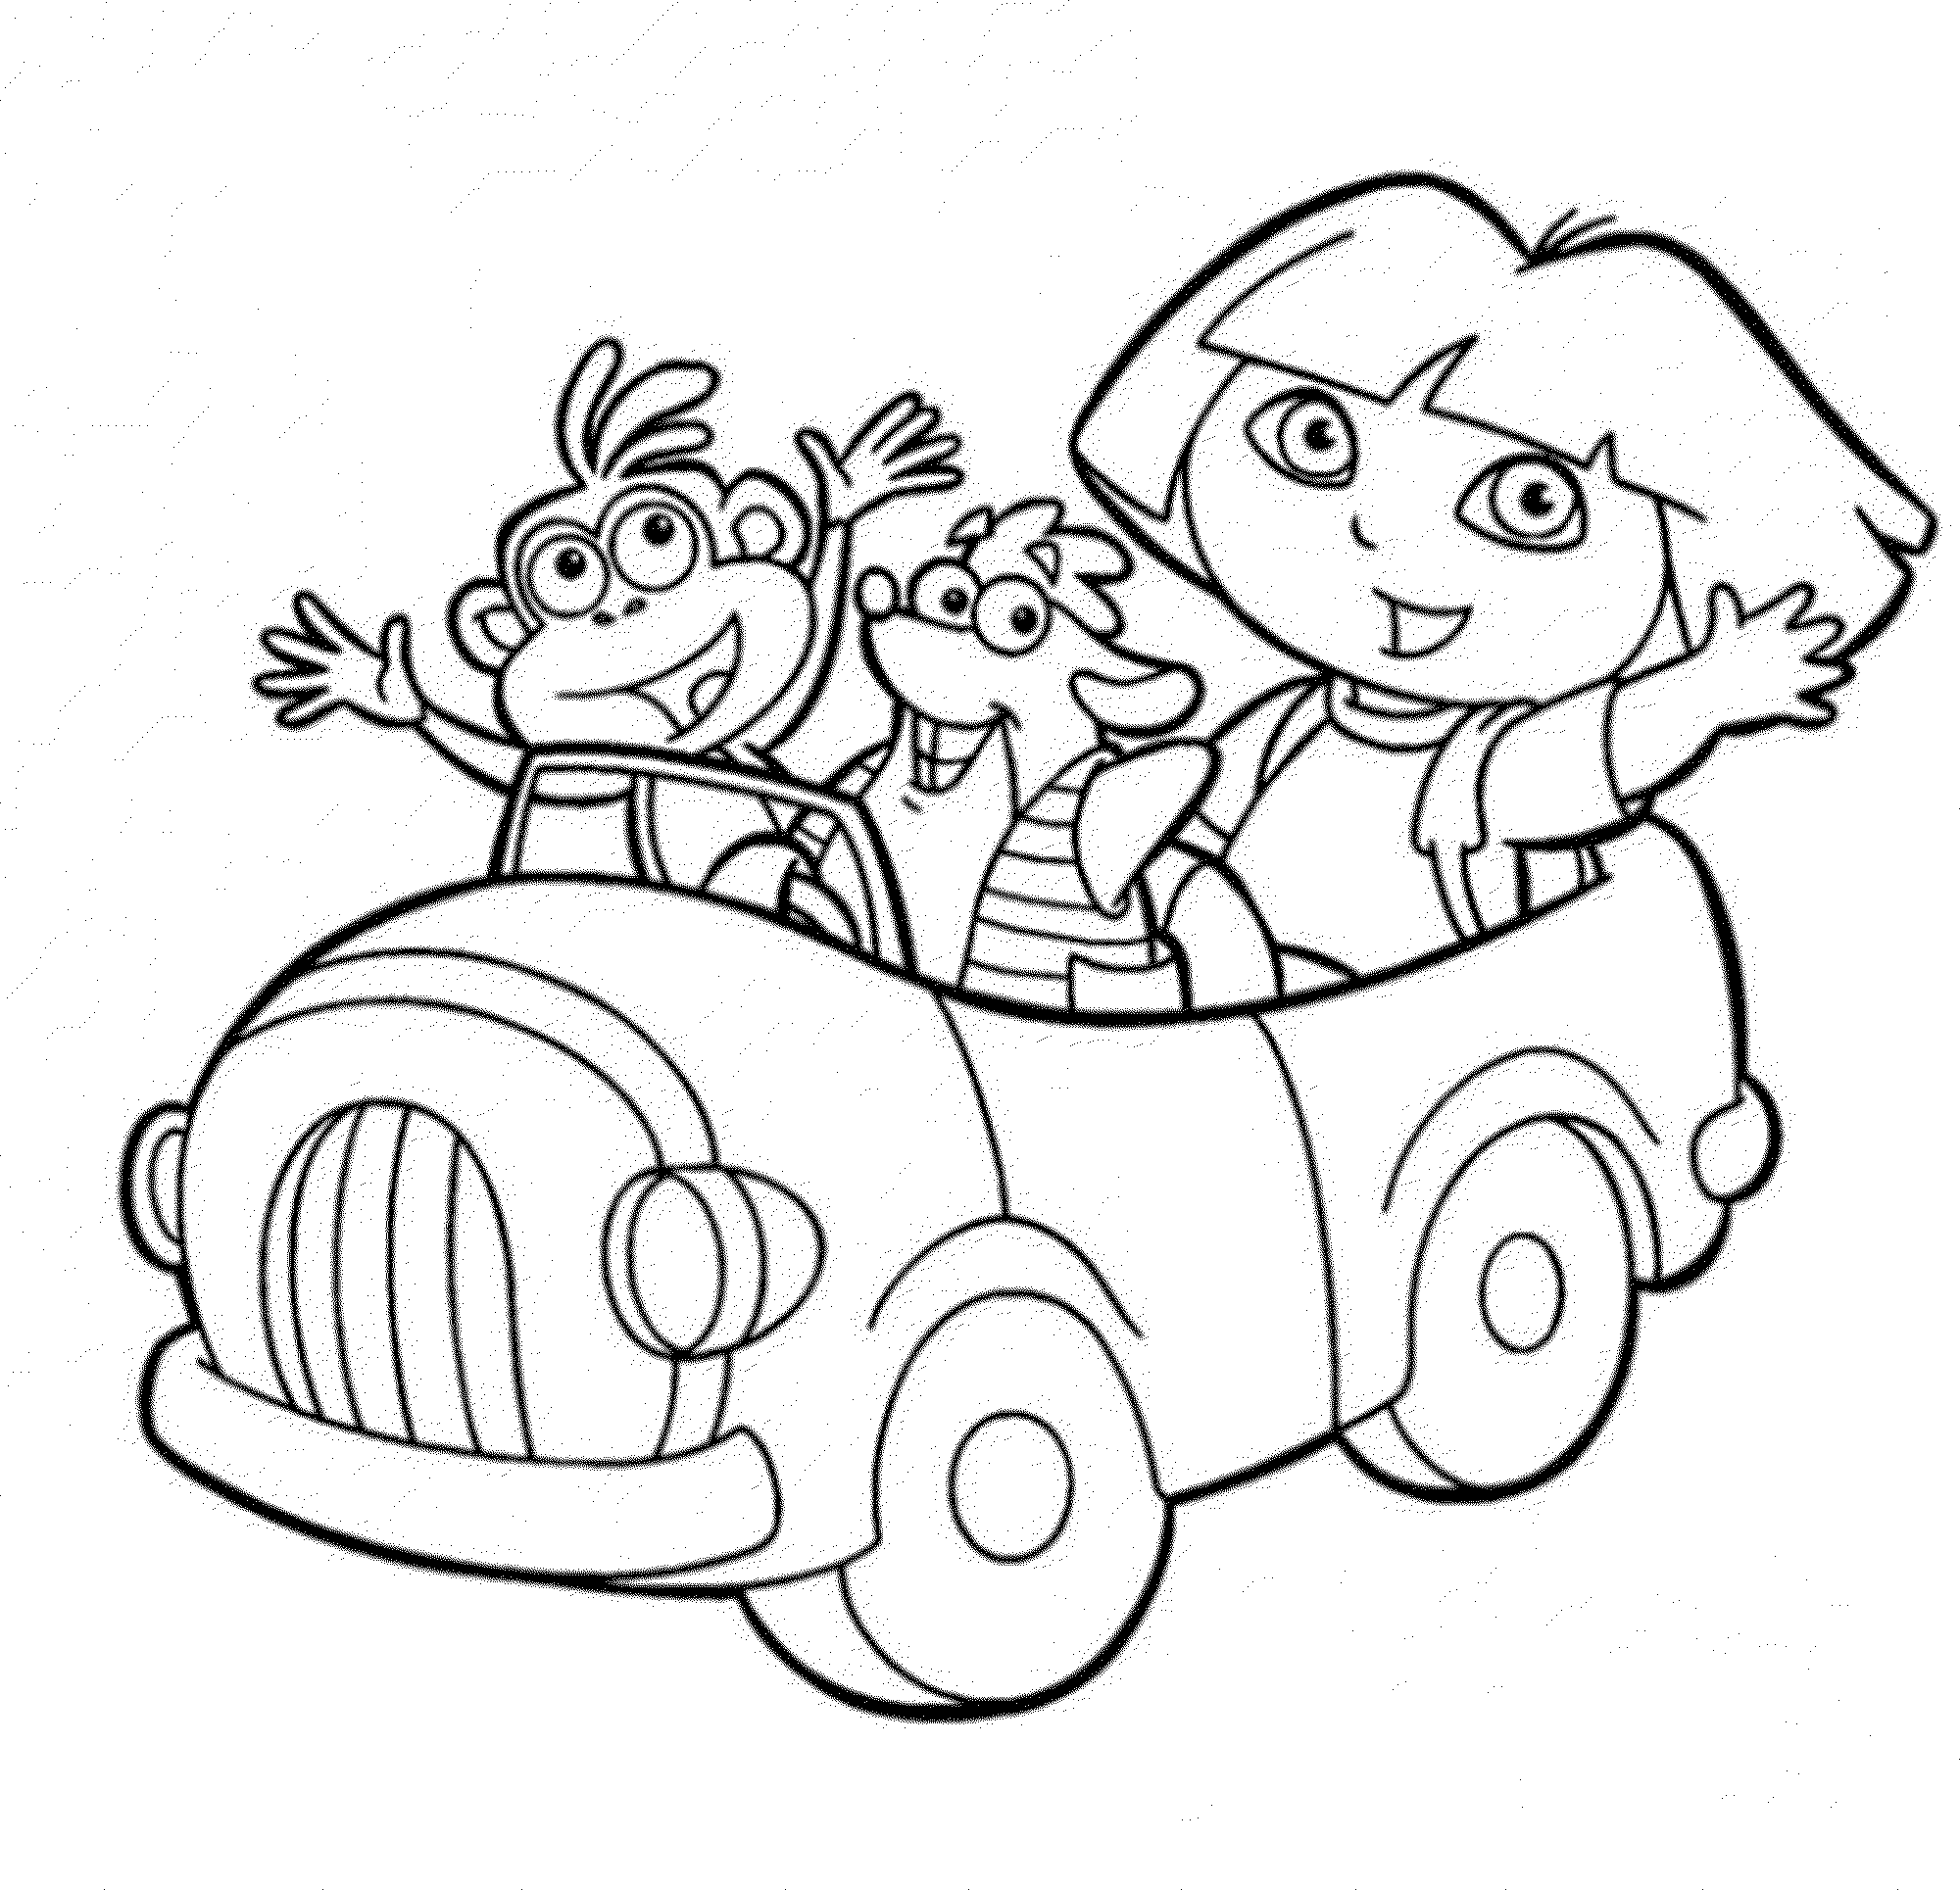 dora to color print download dora coloring pages to learn new things to color dora